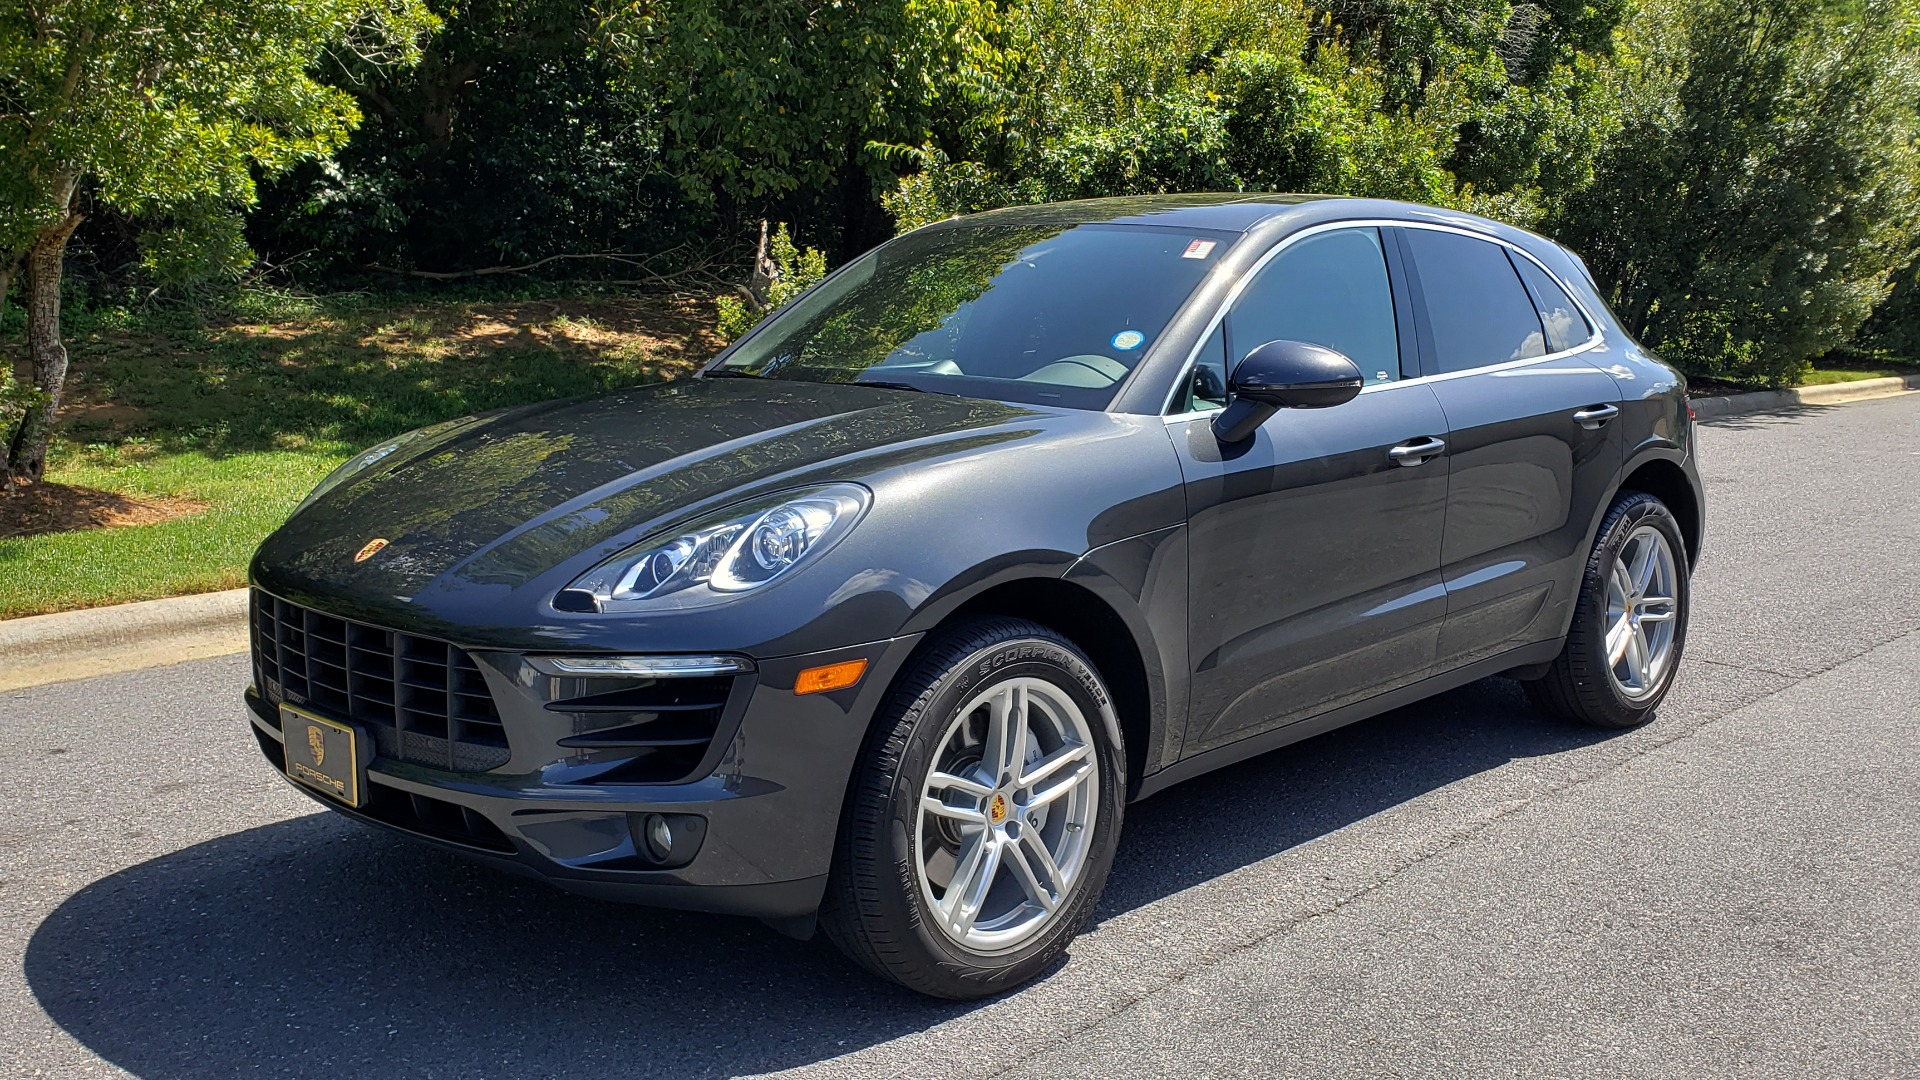 Used 2017 Porsche MACAN S PREMIUM PKG / NAV / BOSE / SUNROOF / REARVIEW for sale Sold at Formula Imports in Charlotte NC 28227 6